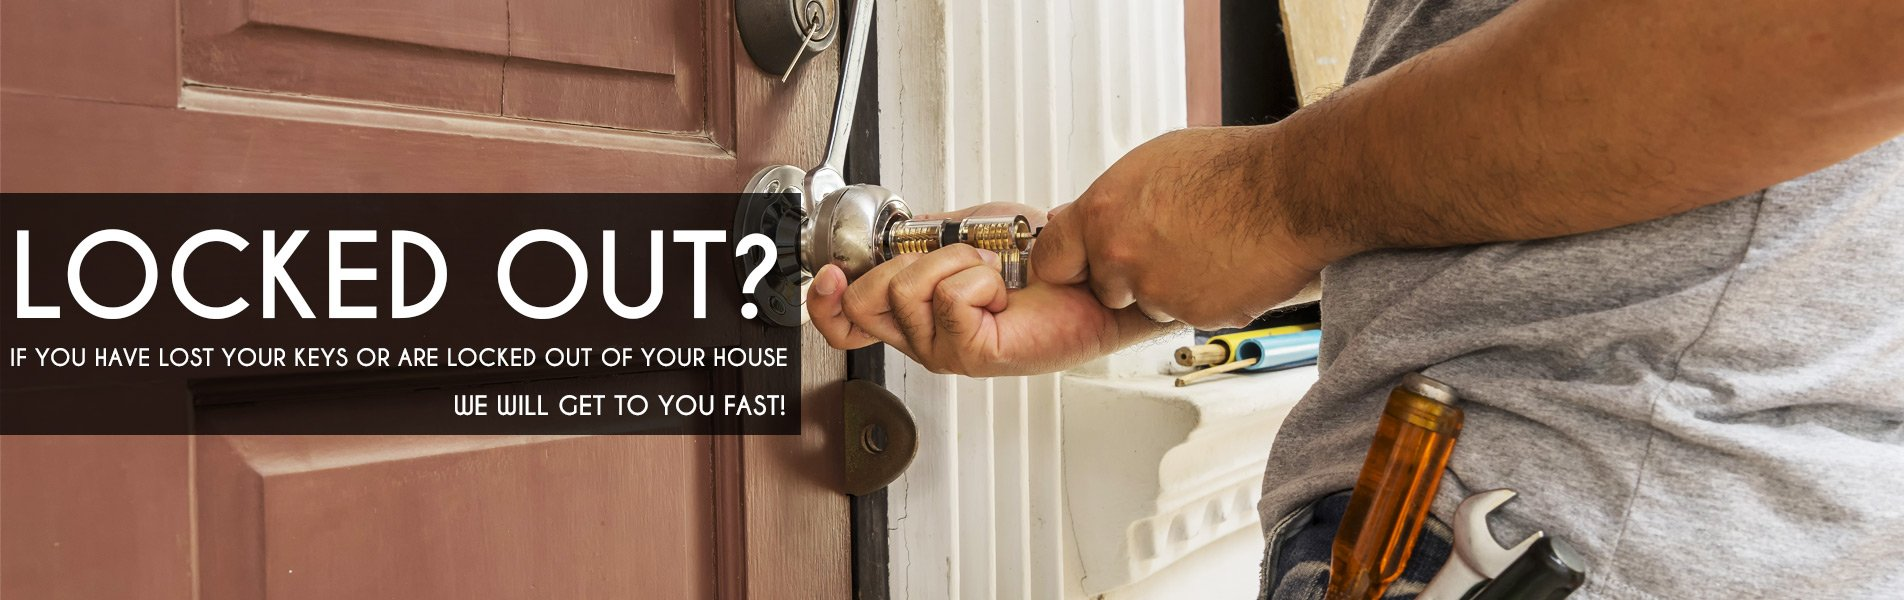 Neptune City NJ Locksmith Store Neptune City, NJ 732-515-3673